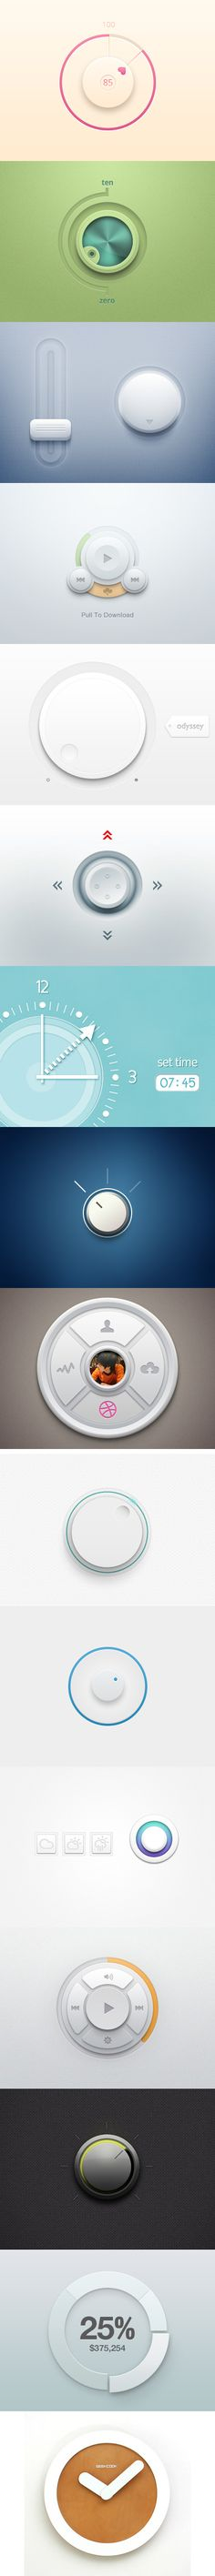 User Interfaces that I like